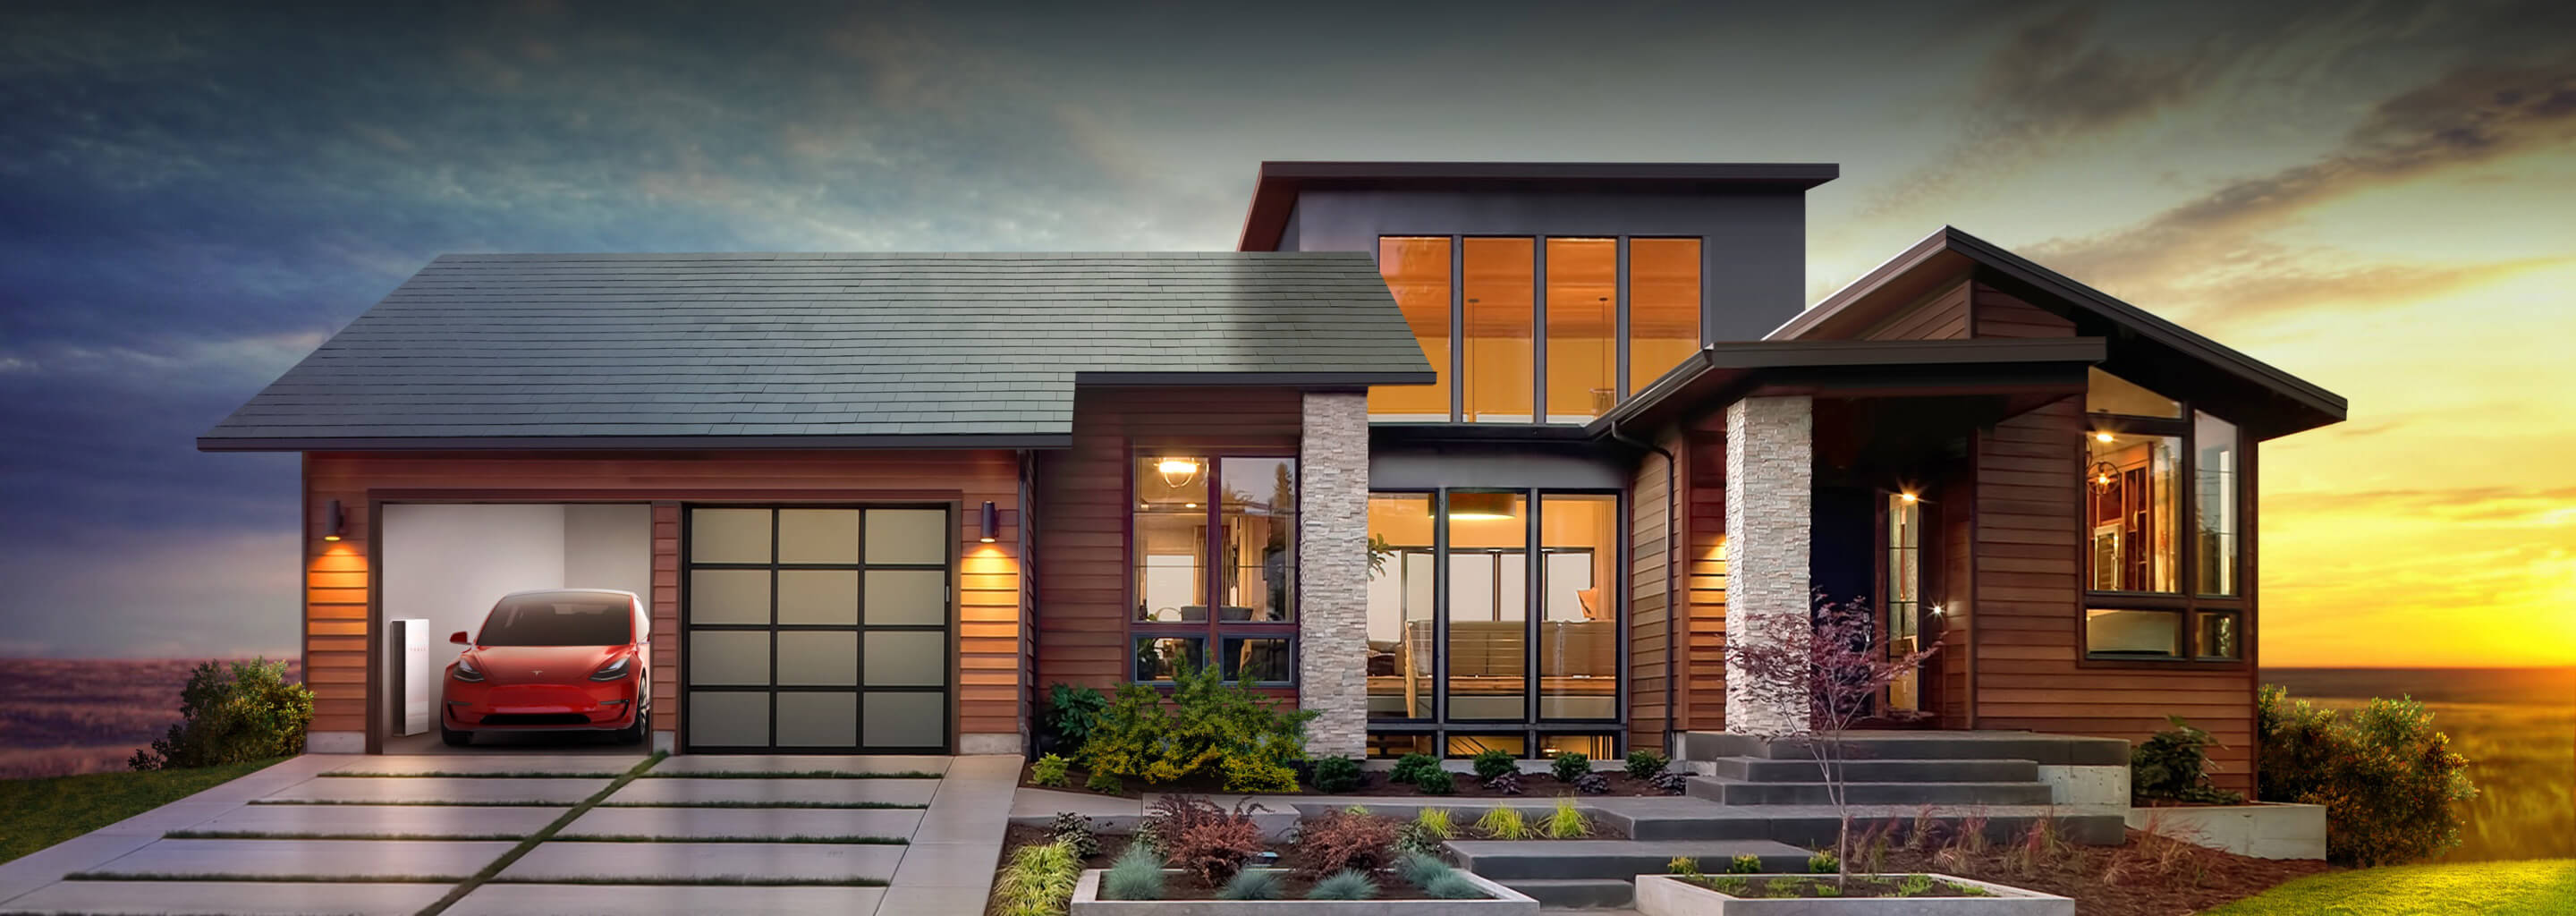 Tesla hometown to require new homes have solar, be 'EV ready' thumbnail